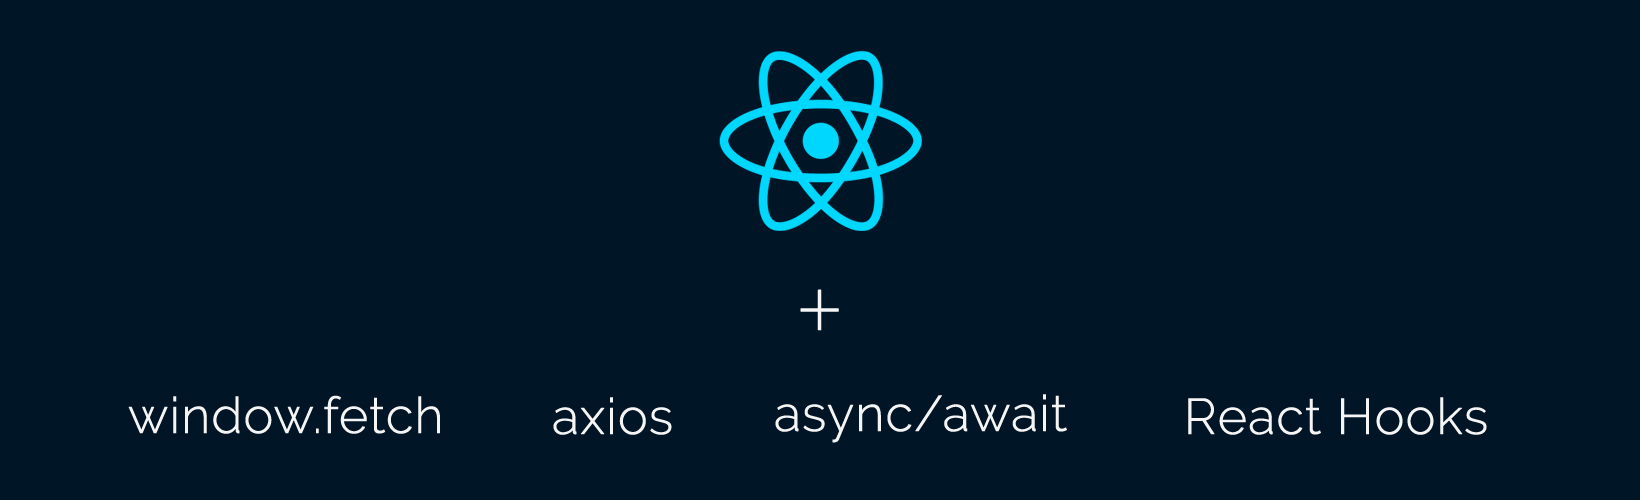 How to Fetch data in React, with error handling